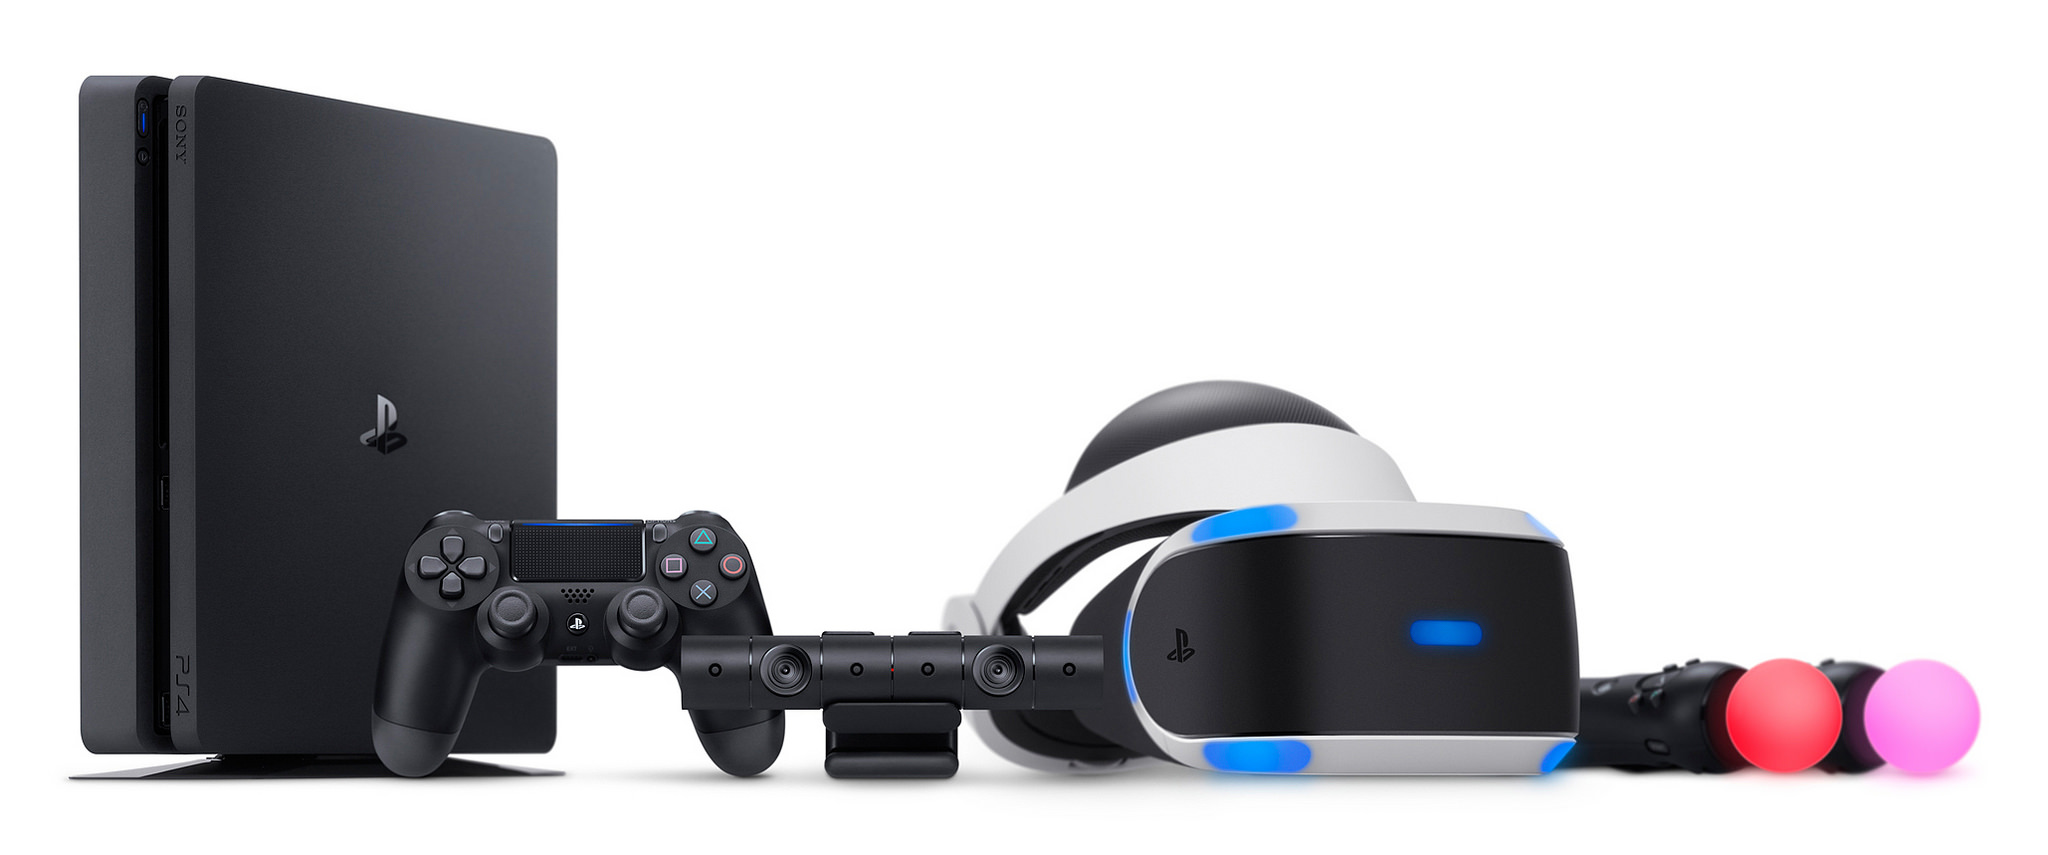 comment acheter le casque de r alit virtuelle playstation vr. Black Bedroom Furniture Sets. Home Design Ideas